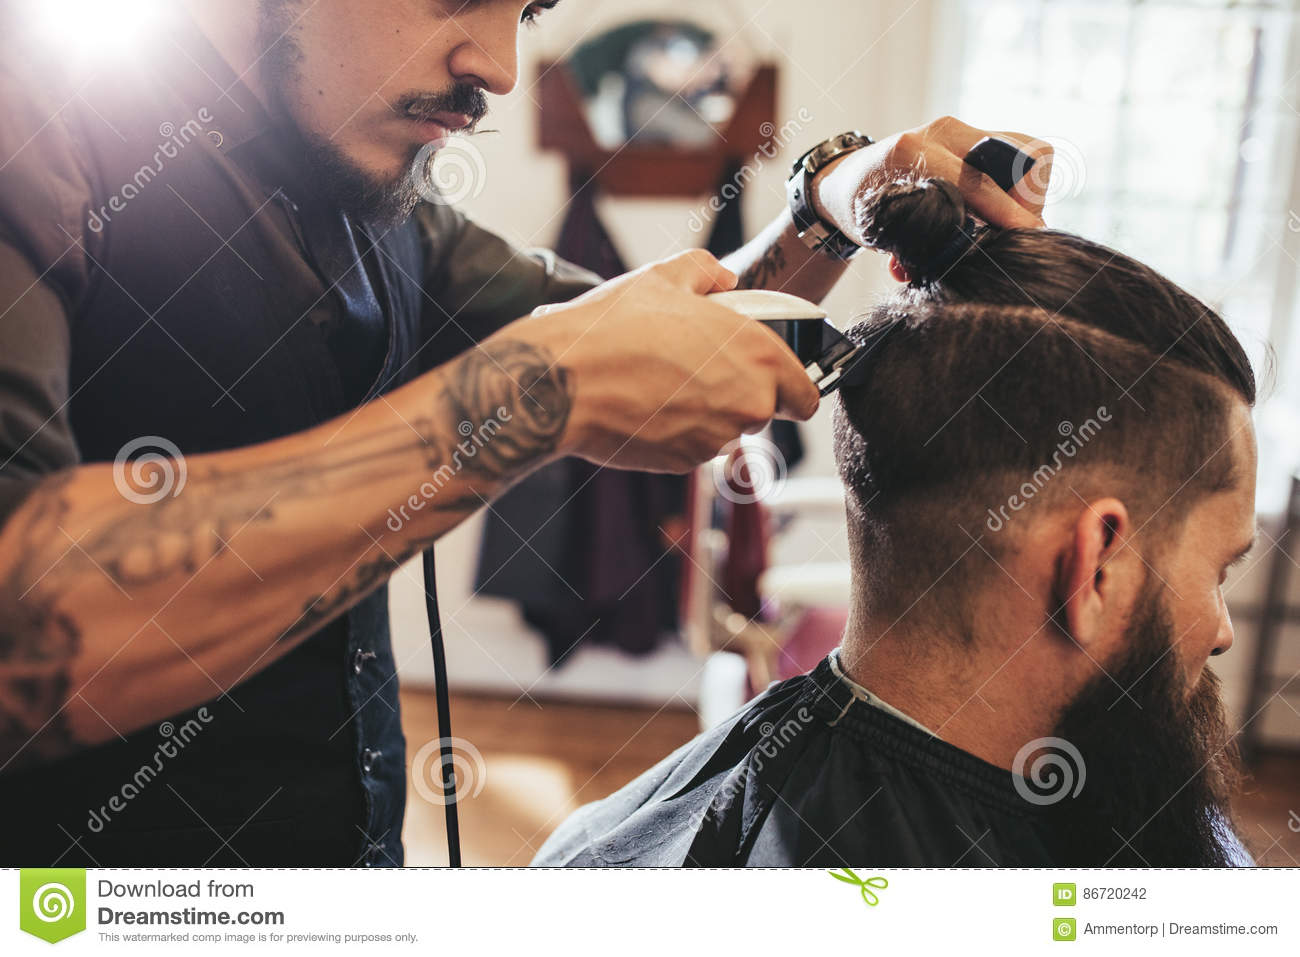 Man getting trendy haircut in barber shop